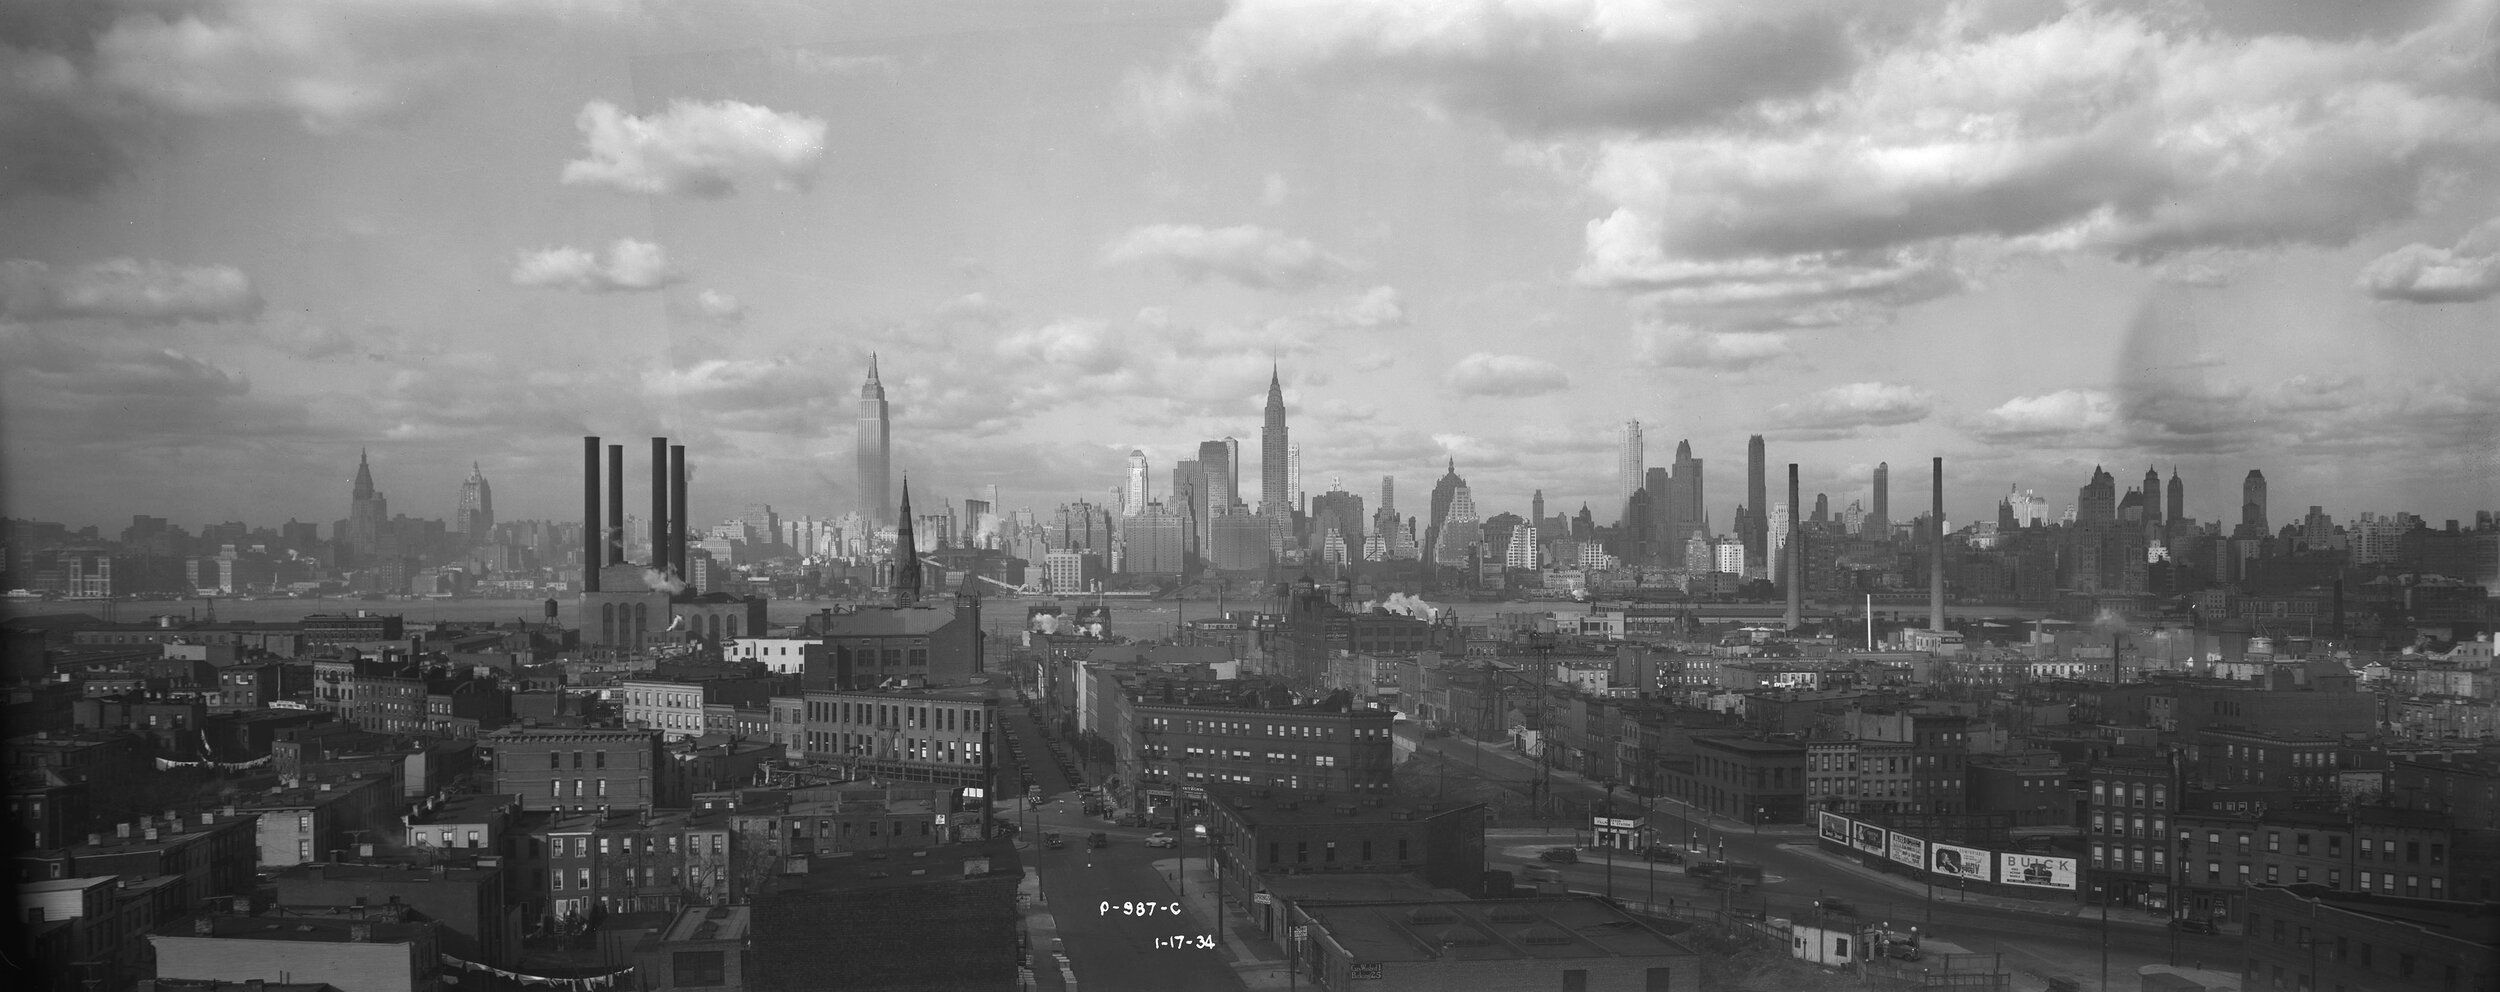 P-987-c:  View of Manhattan skyline from Long Island City, January 1, 1934. Borough President Queens Collection, NYC Municipal Archives.  Visible buildings include the Vanderbilt Hotel, Empire State, 10 East 40th Street, Daily News, Chanin, Lincoln, Chrysler, 500 Fifth Avenue, New York Central, Grand Central Palace, RCA, Waldorf Astoria, General Electric, River House, Savoy Plaza, Ritz Towers, Sherry Netherlands.